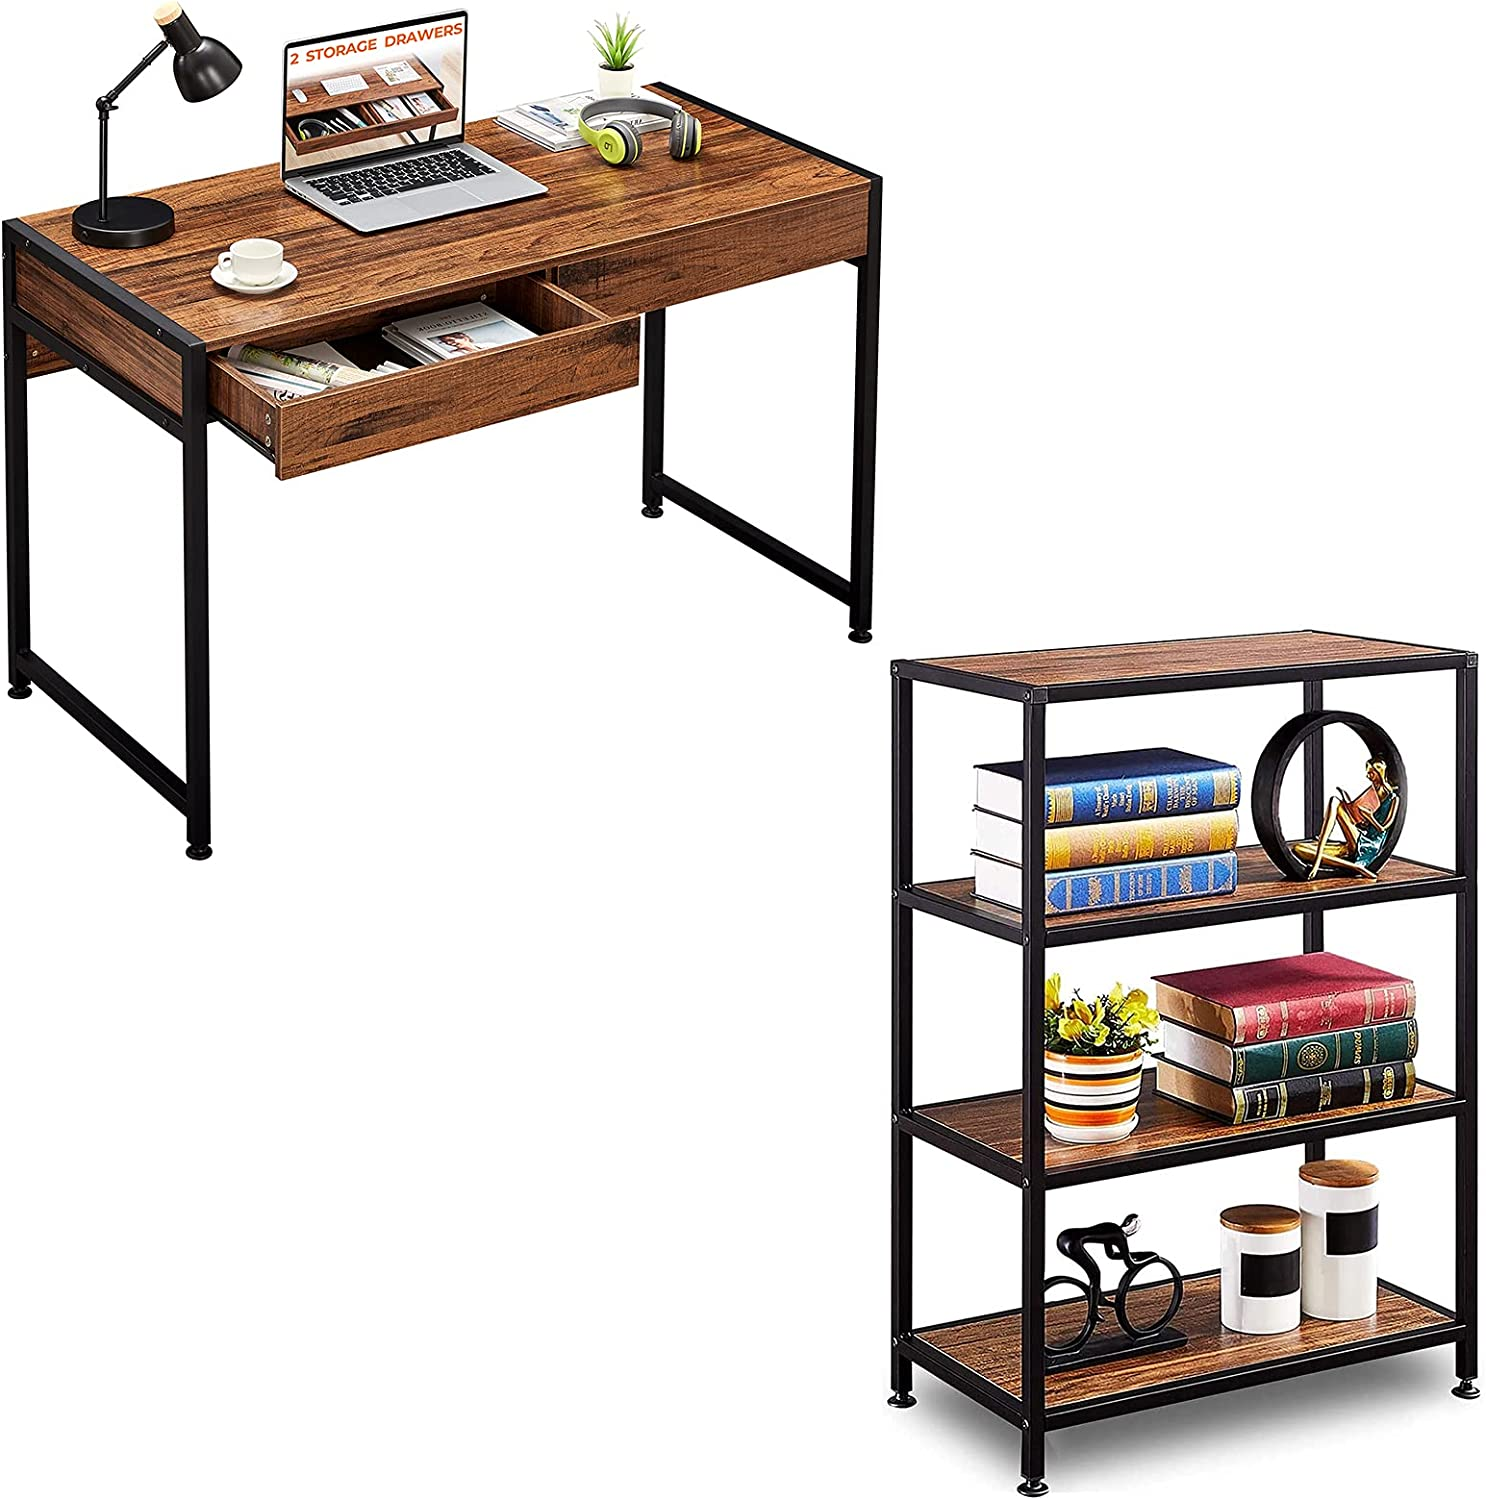 GreenForest Writing Desk depot with 2 Storage Drawers Industrial Bookc Daily bargain sale